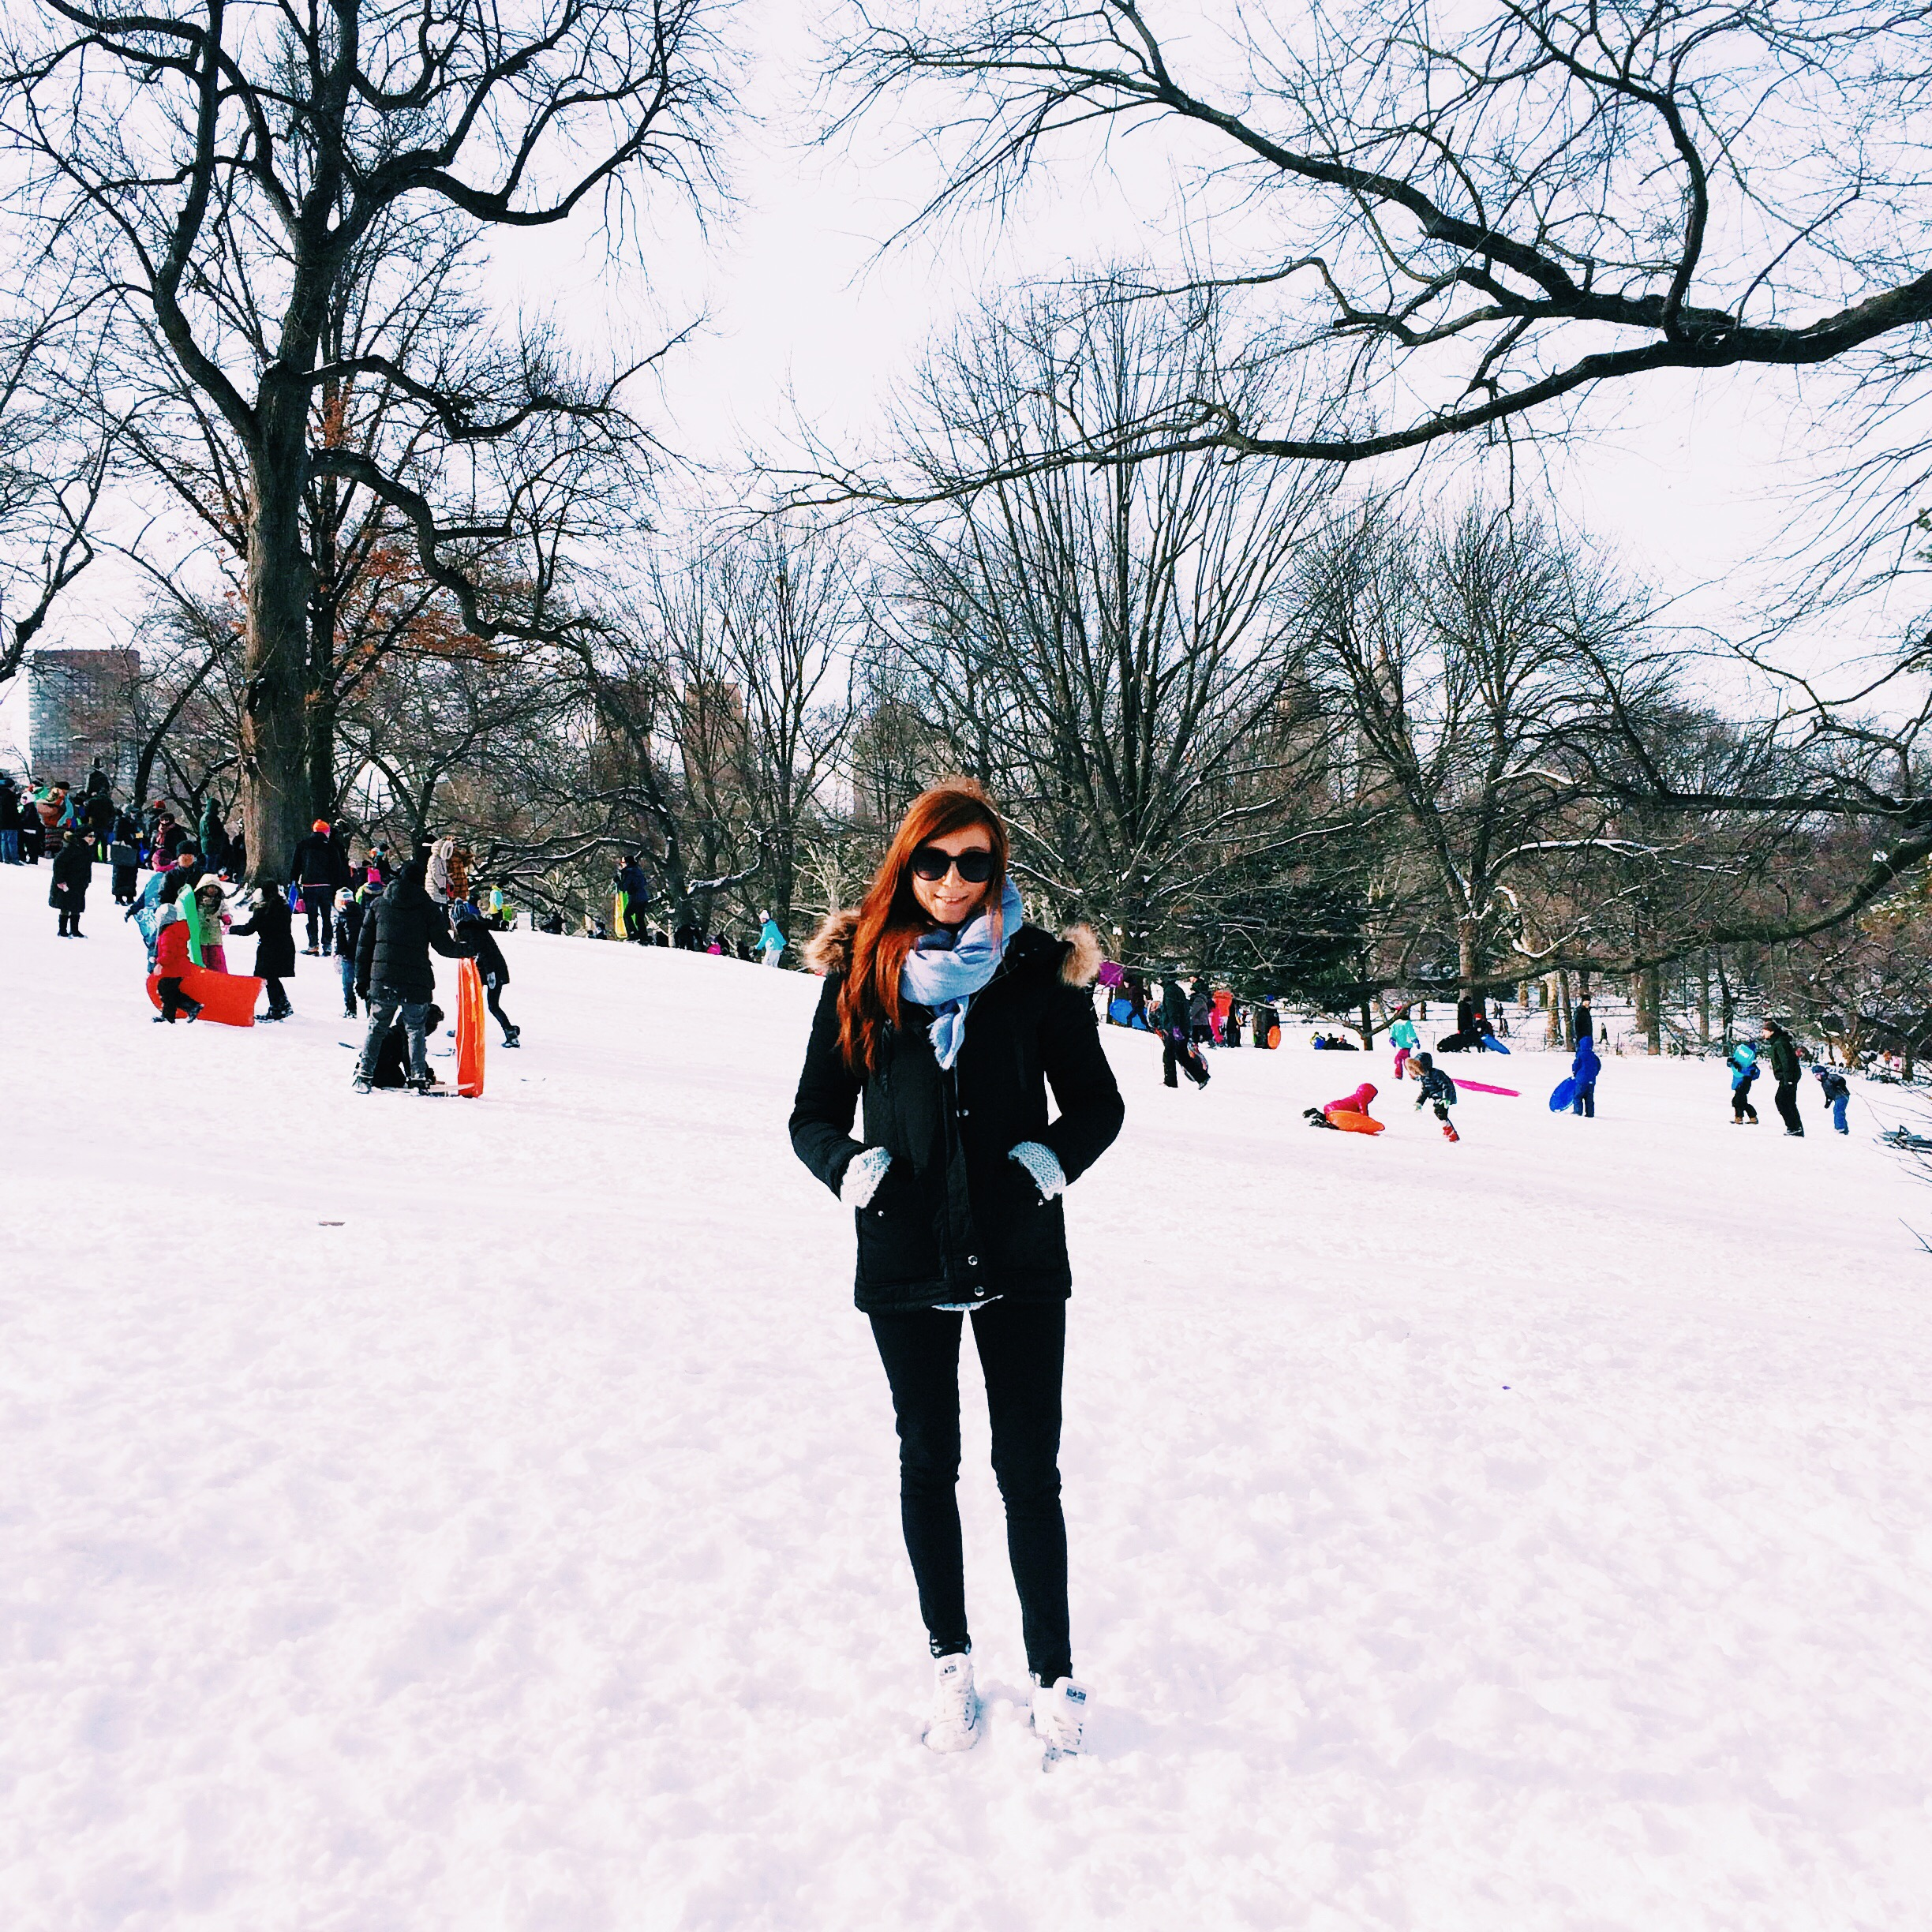 Snow Day - Blizzard of 2015 - New York